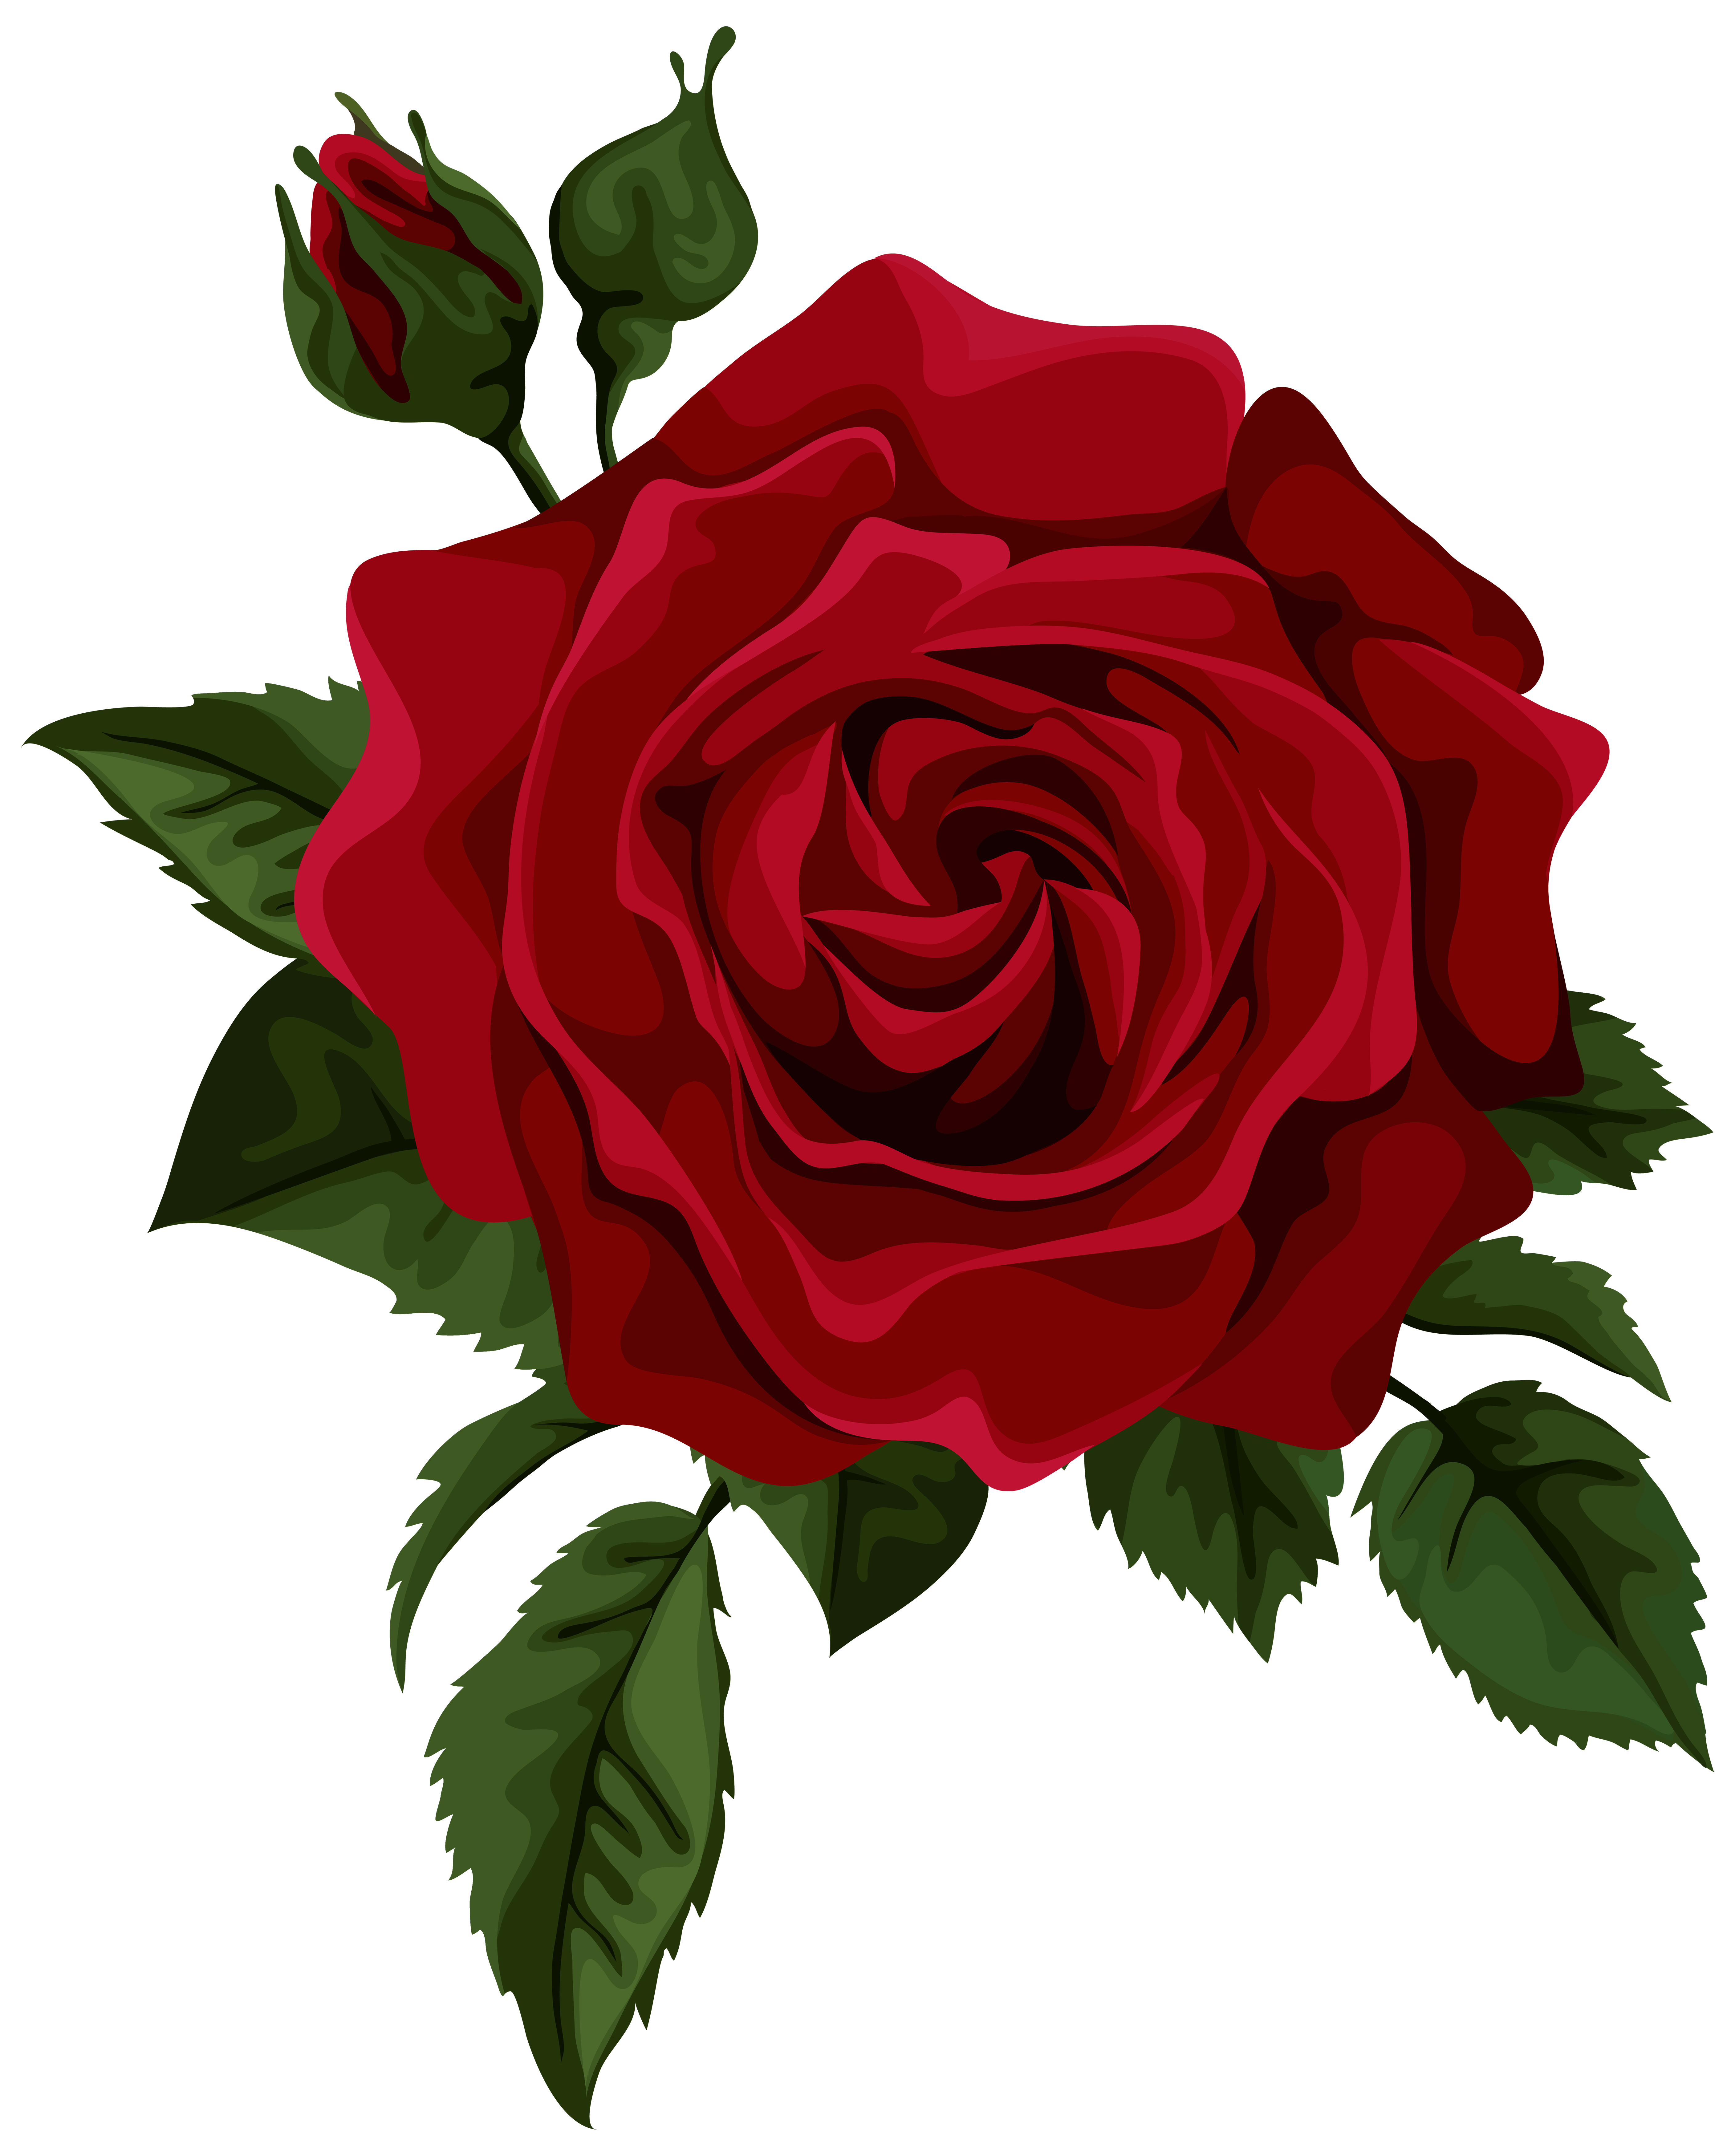 Roses red rose with bud transparent clip art picture.